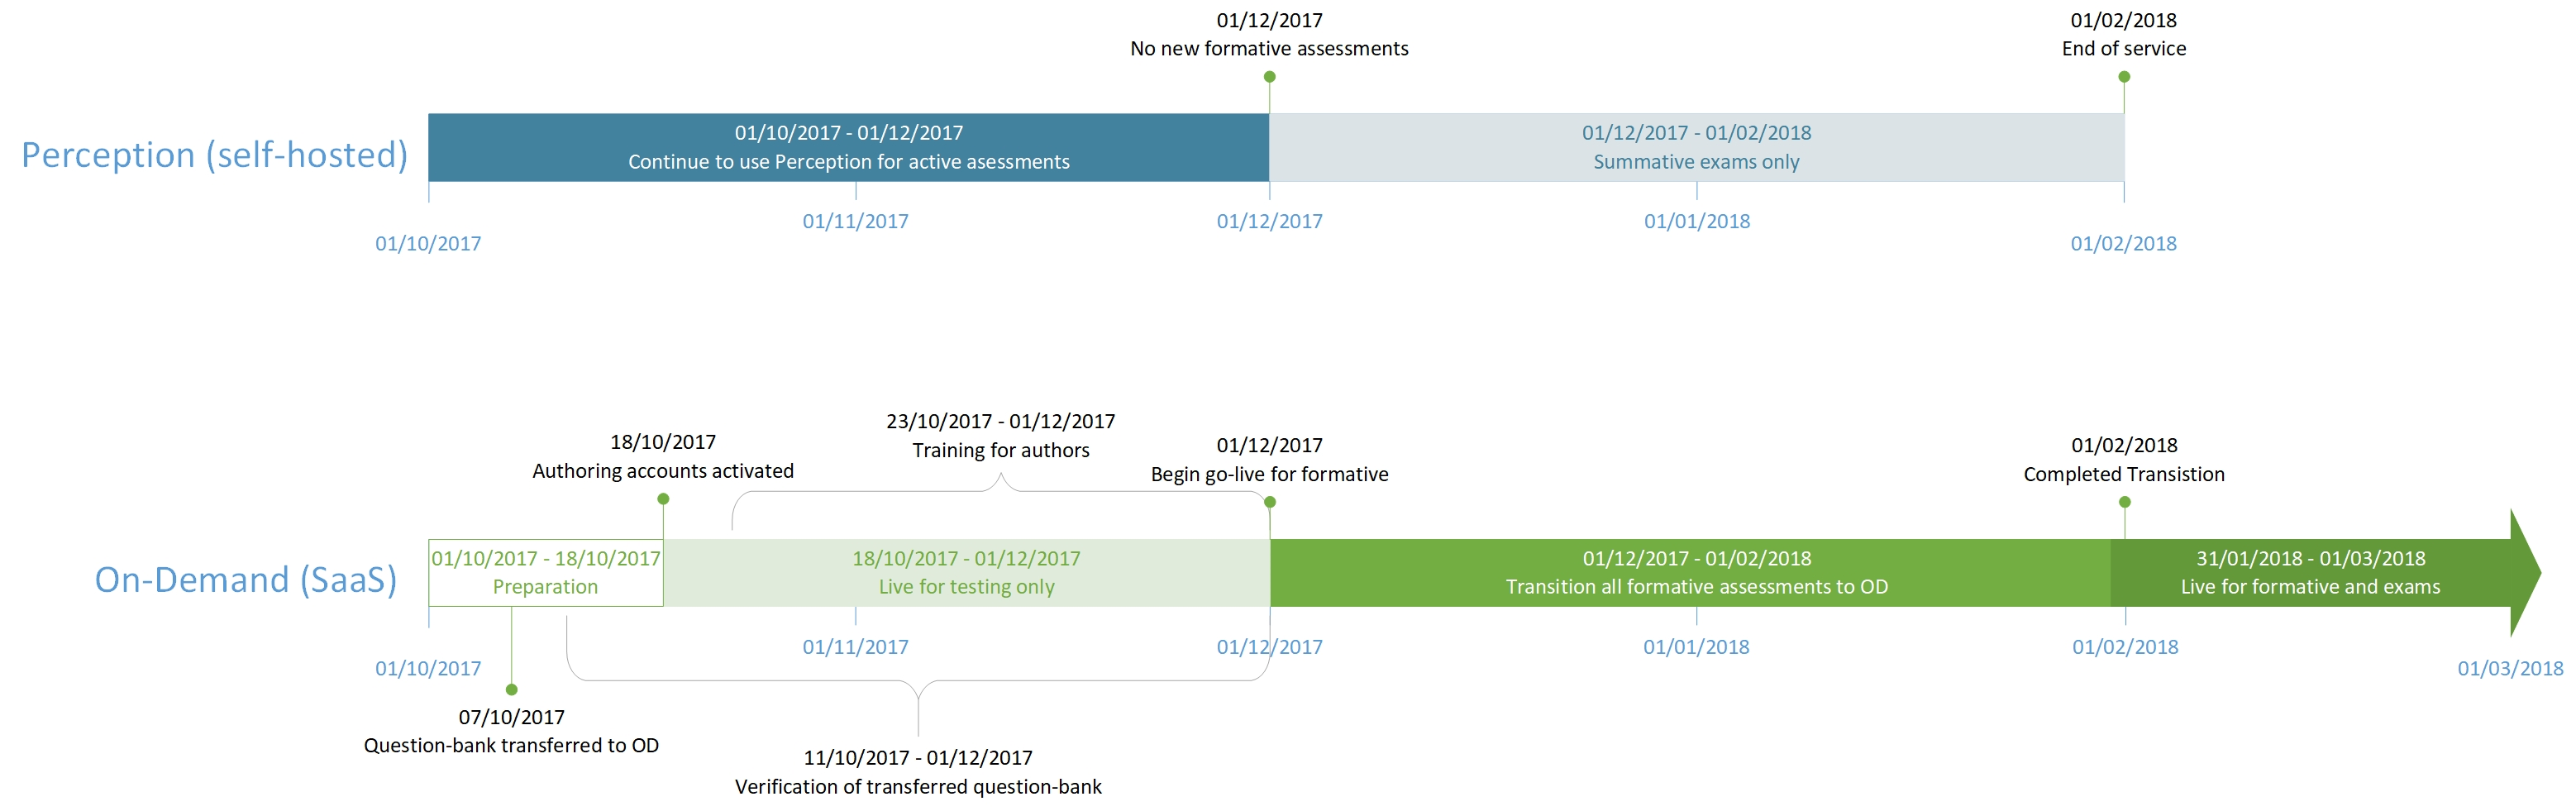 Questionmark On-Demand Project Timeline